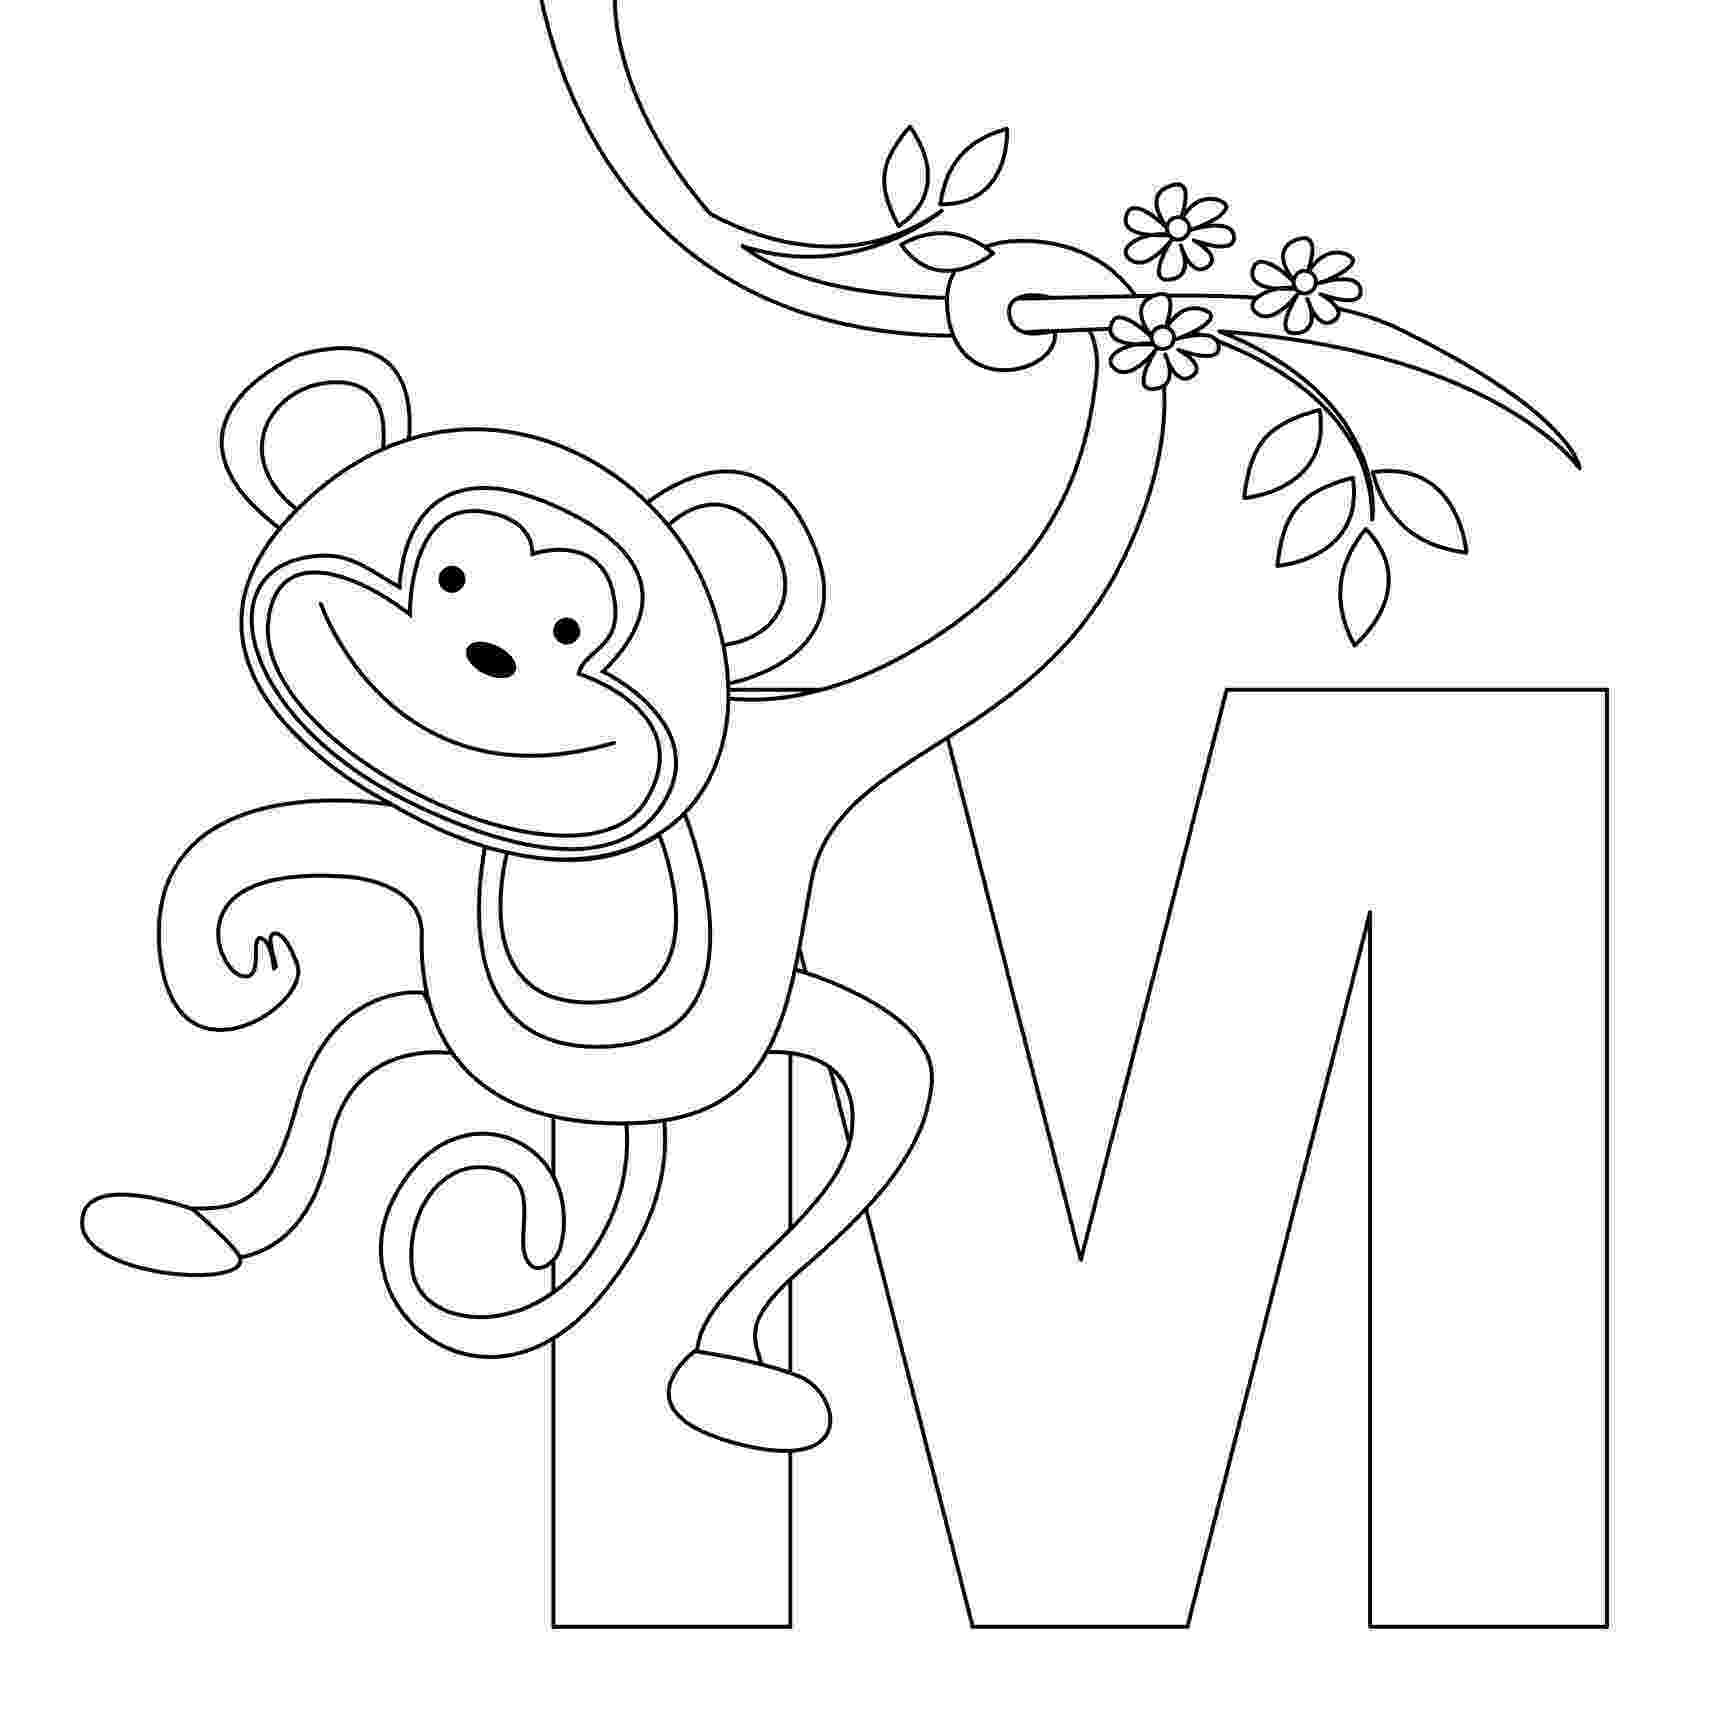 coloring pages of letters free printable alphabet coloring pages for kids best letters of coloring pages